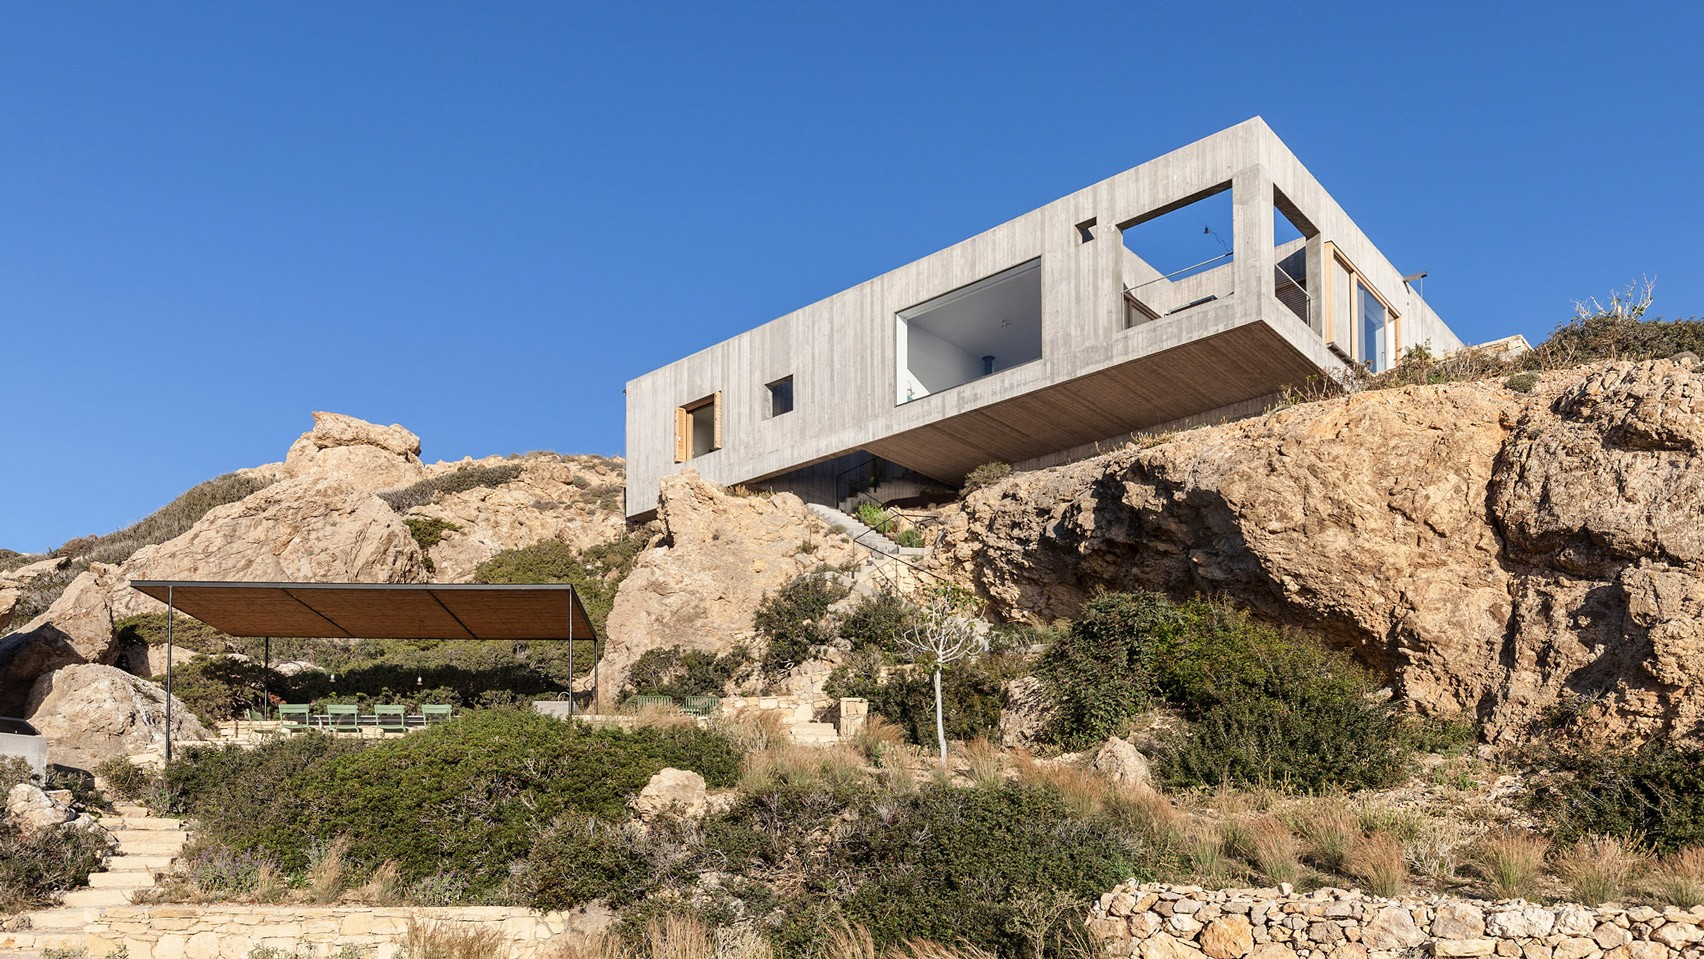 patio-house-ooak-architects-residential-architecture-house-greece-dezeen-2364-hero.jpg